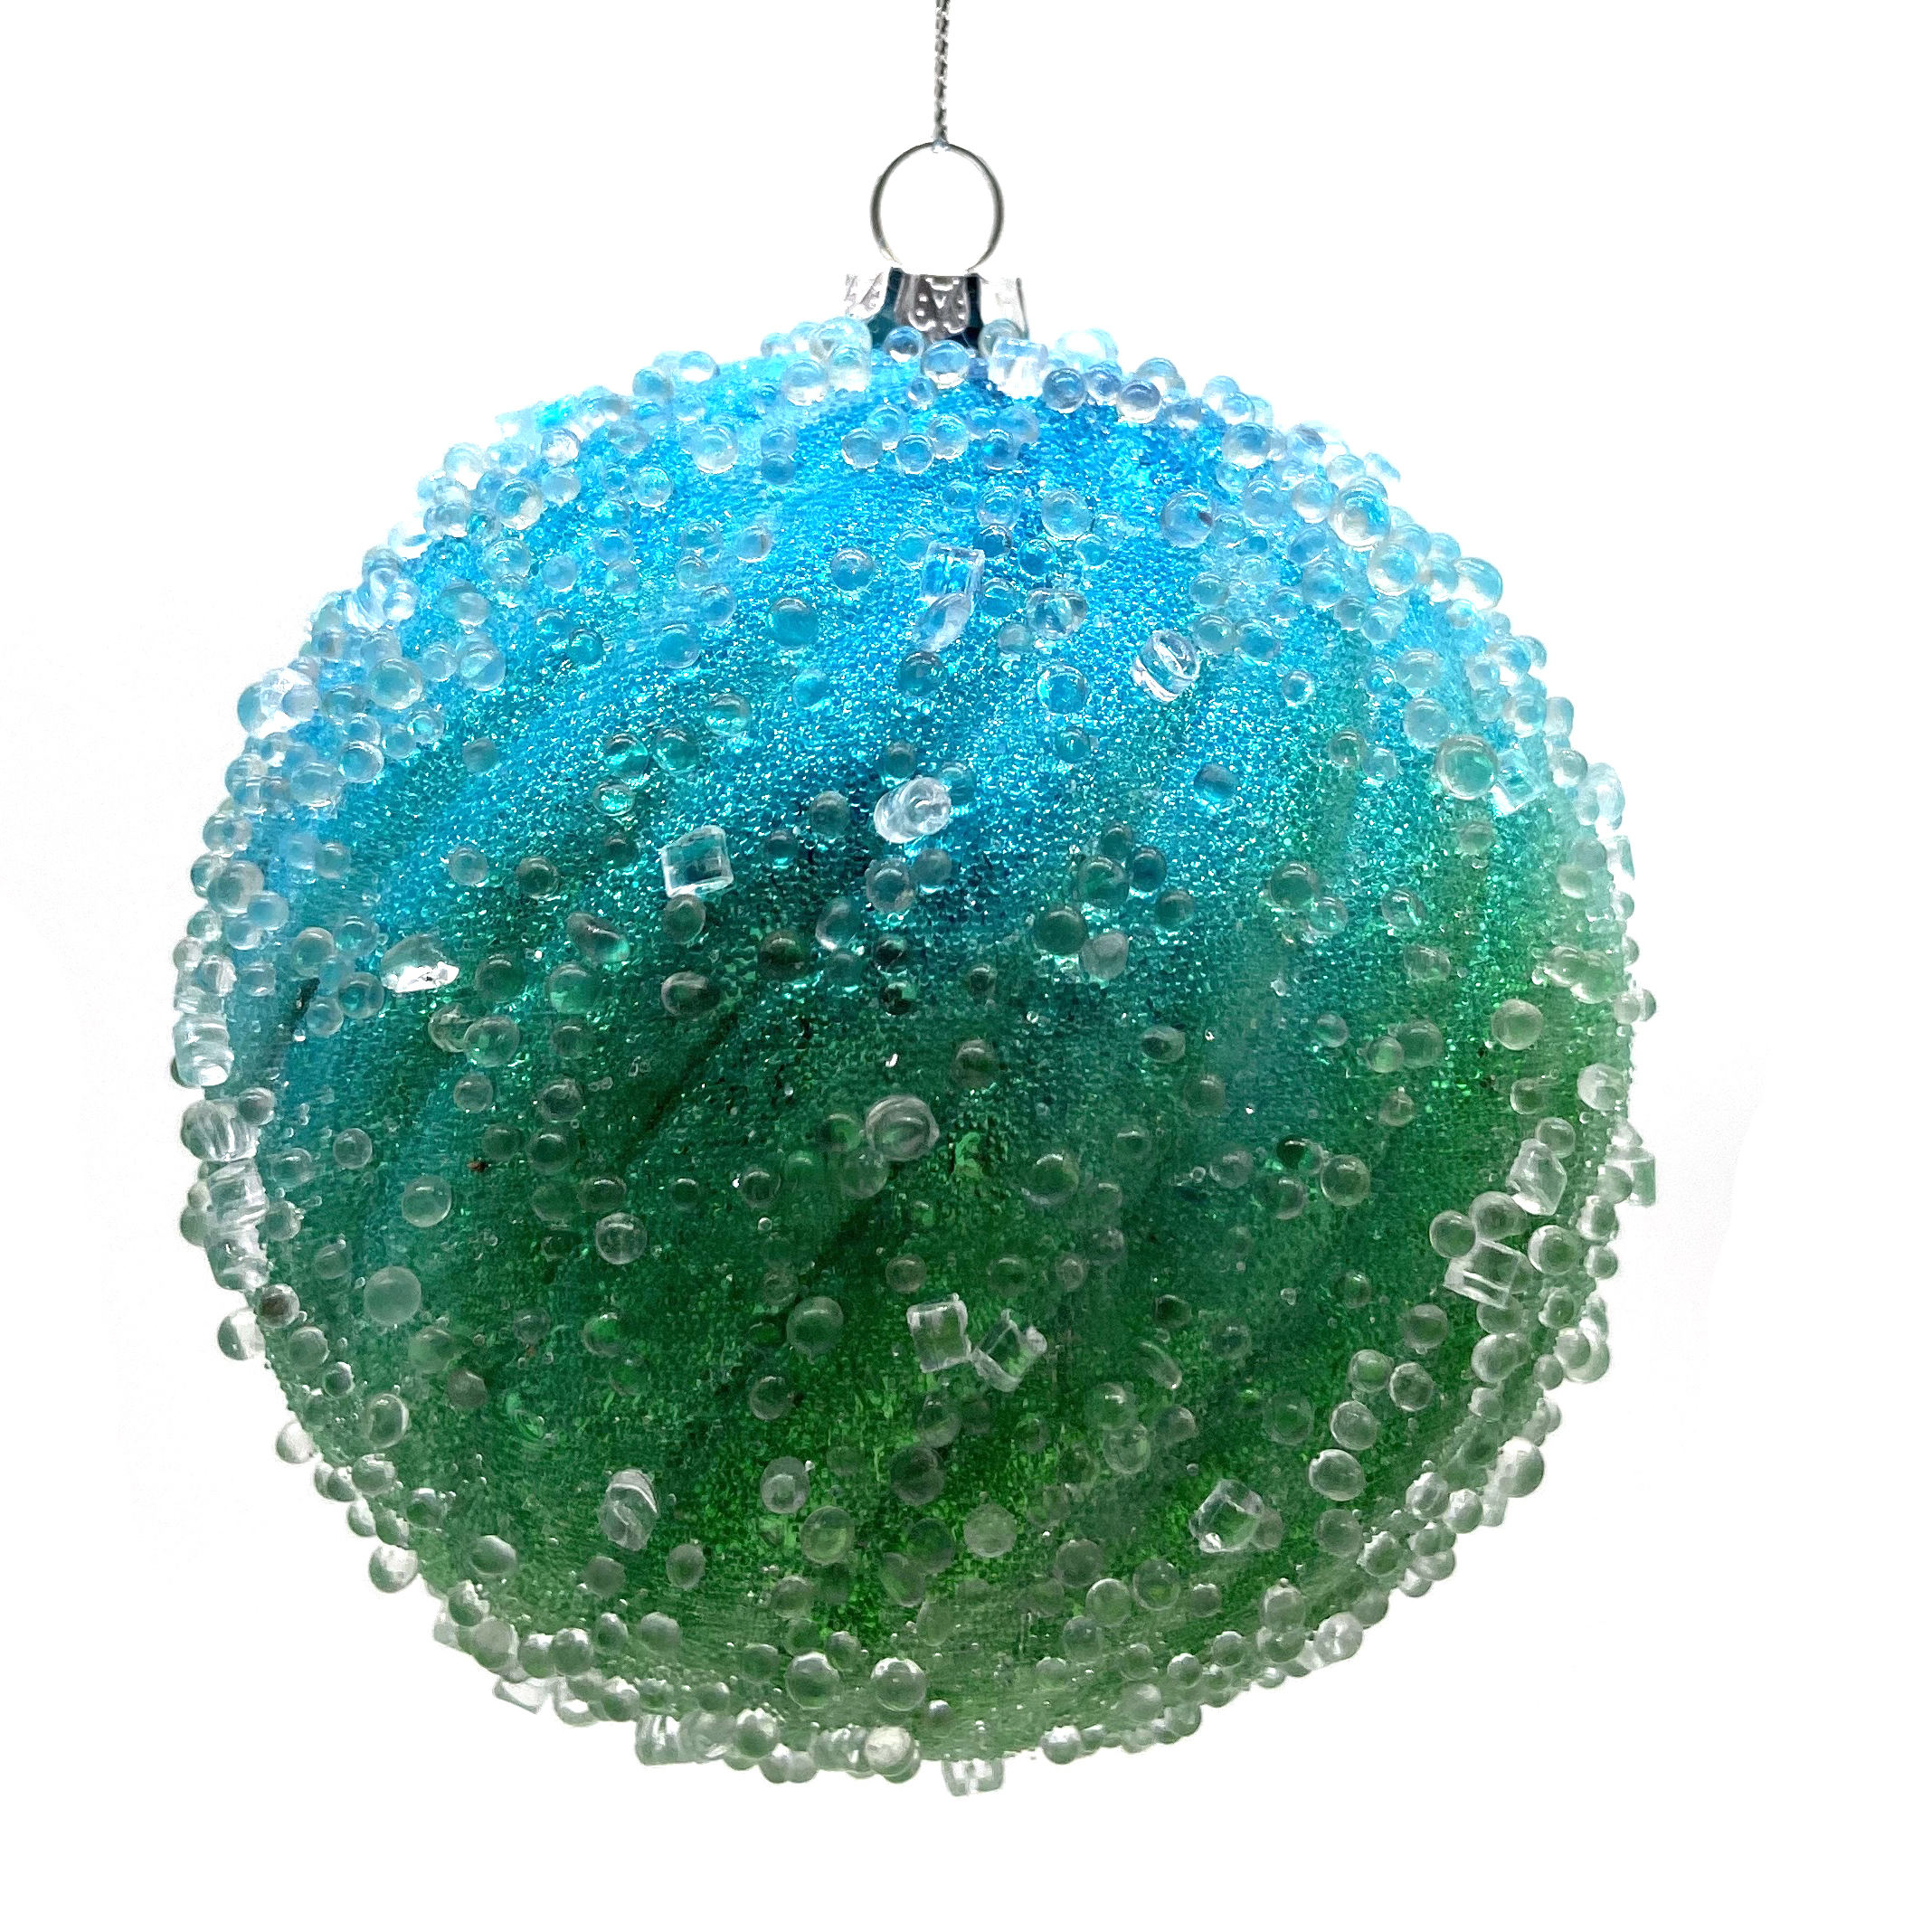 New Arrivals 2020 Promotional Gifts Glitter Christmas Ball Custom Ornament With Clear Beads